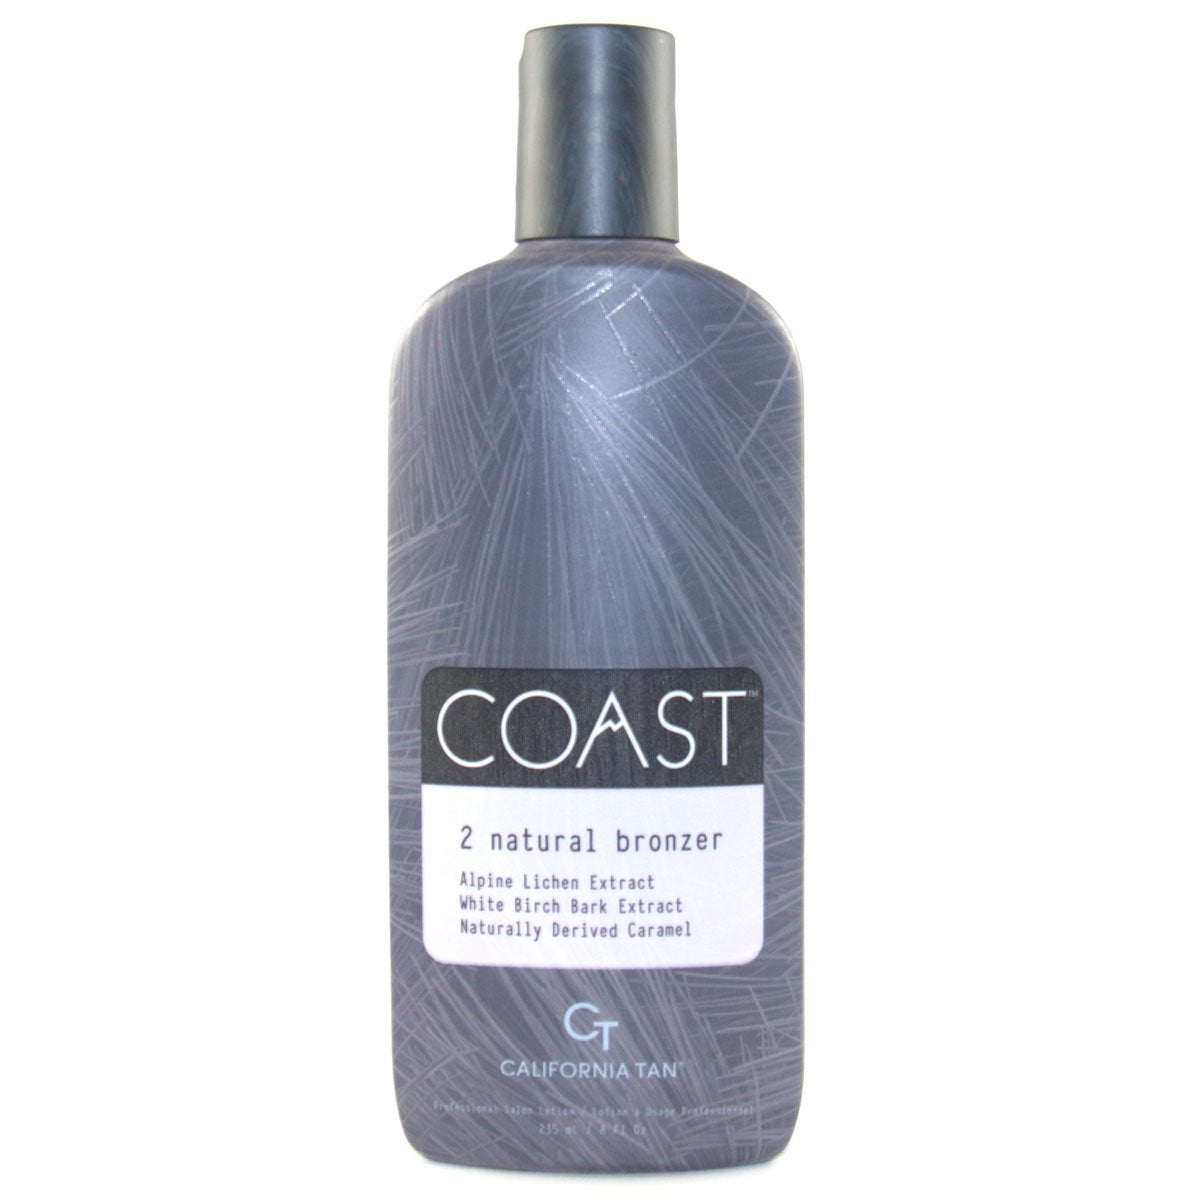 California Tan Coast Step 2 Natural Bronzer Tanning Lotion - LuxuryBeautySource.com